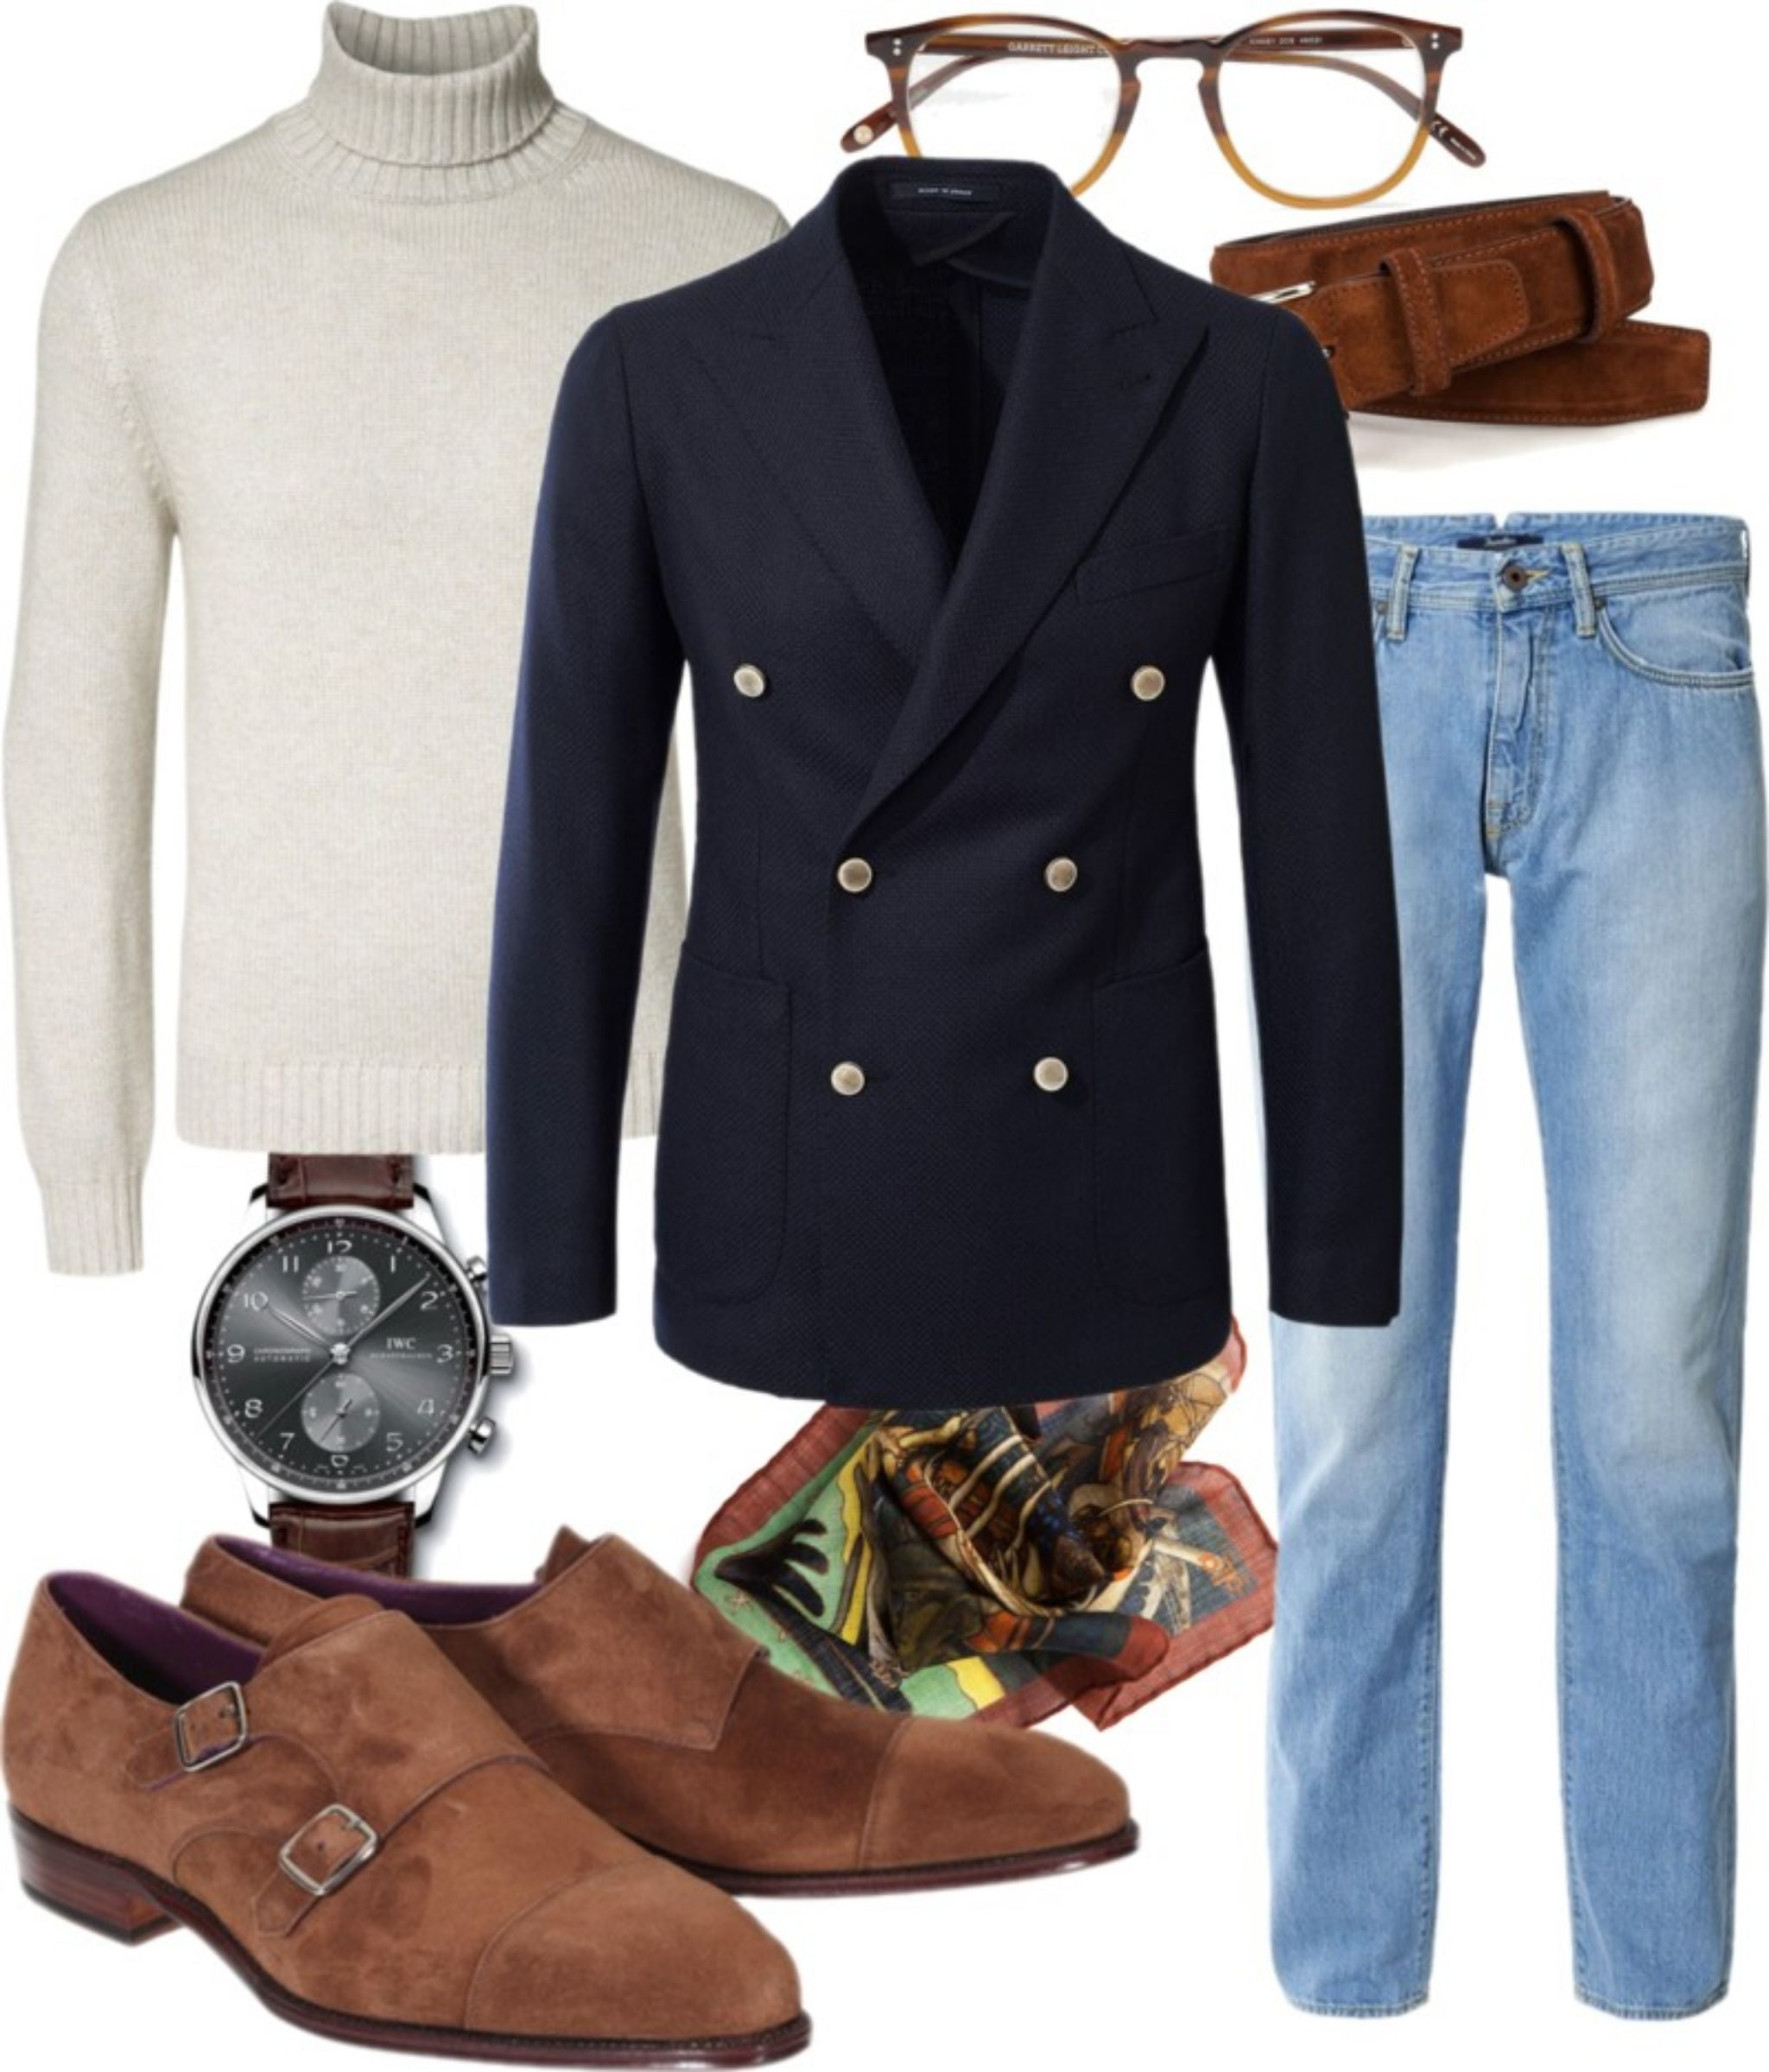 Double-breasted-blazer-with-jeans-and-roll-neck-sweater